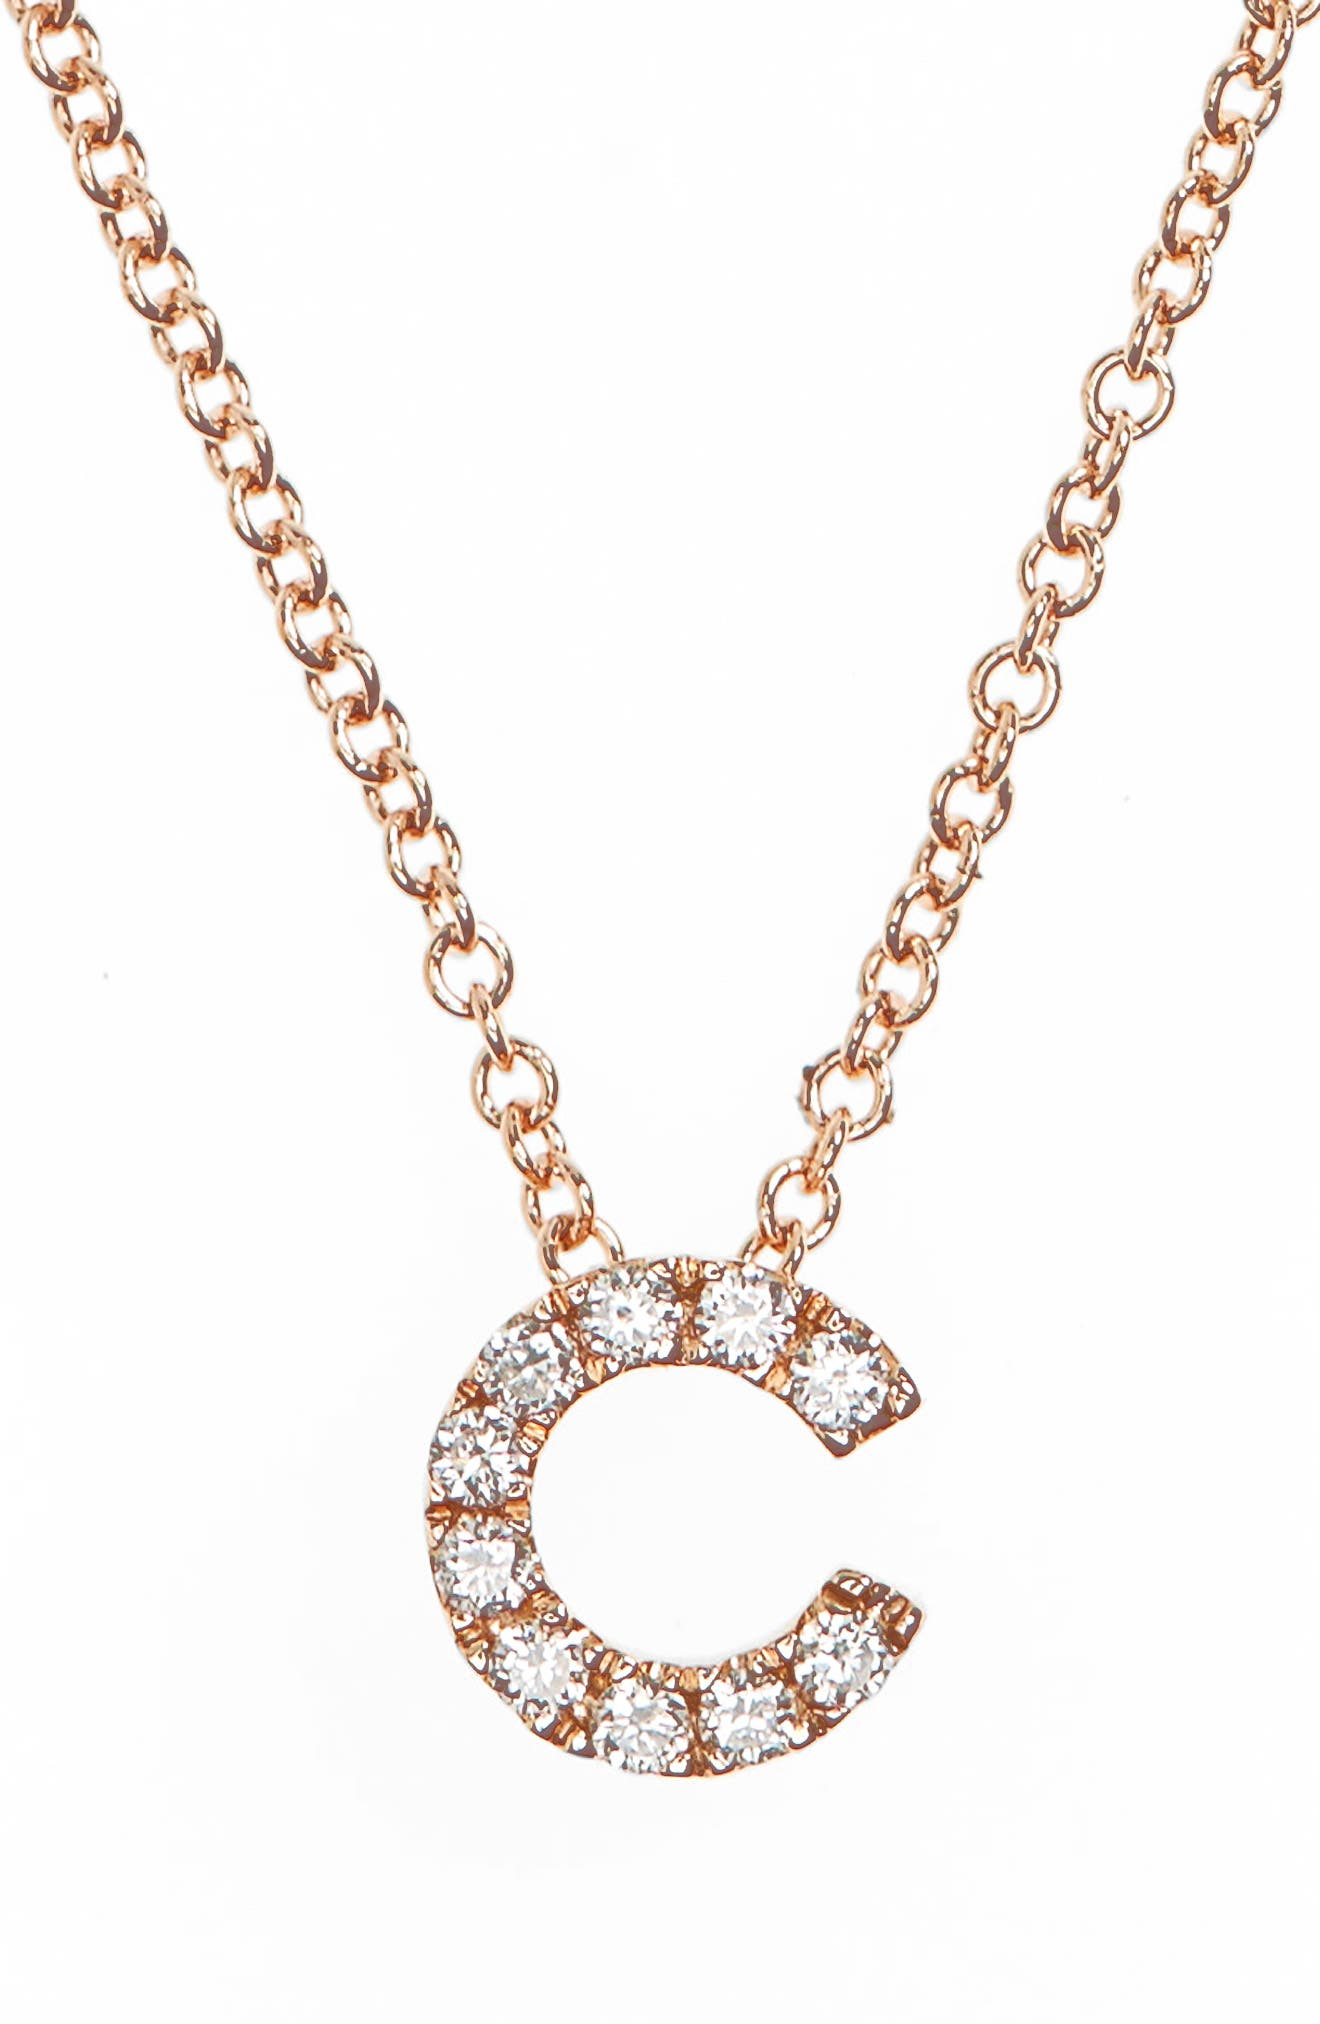 18k Gold Pavé Diamond Initial Pendant Necklace,                         Main,                         color, ROSE GOLD - C